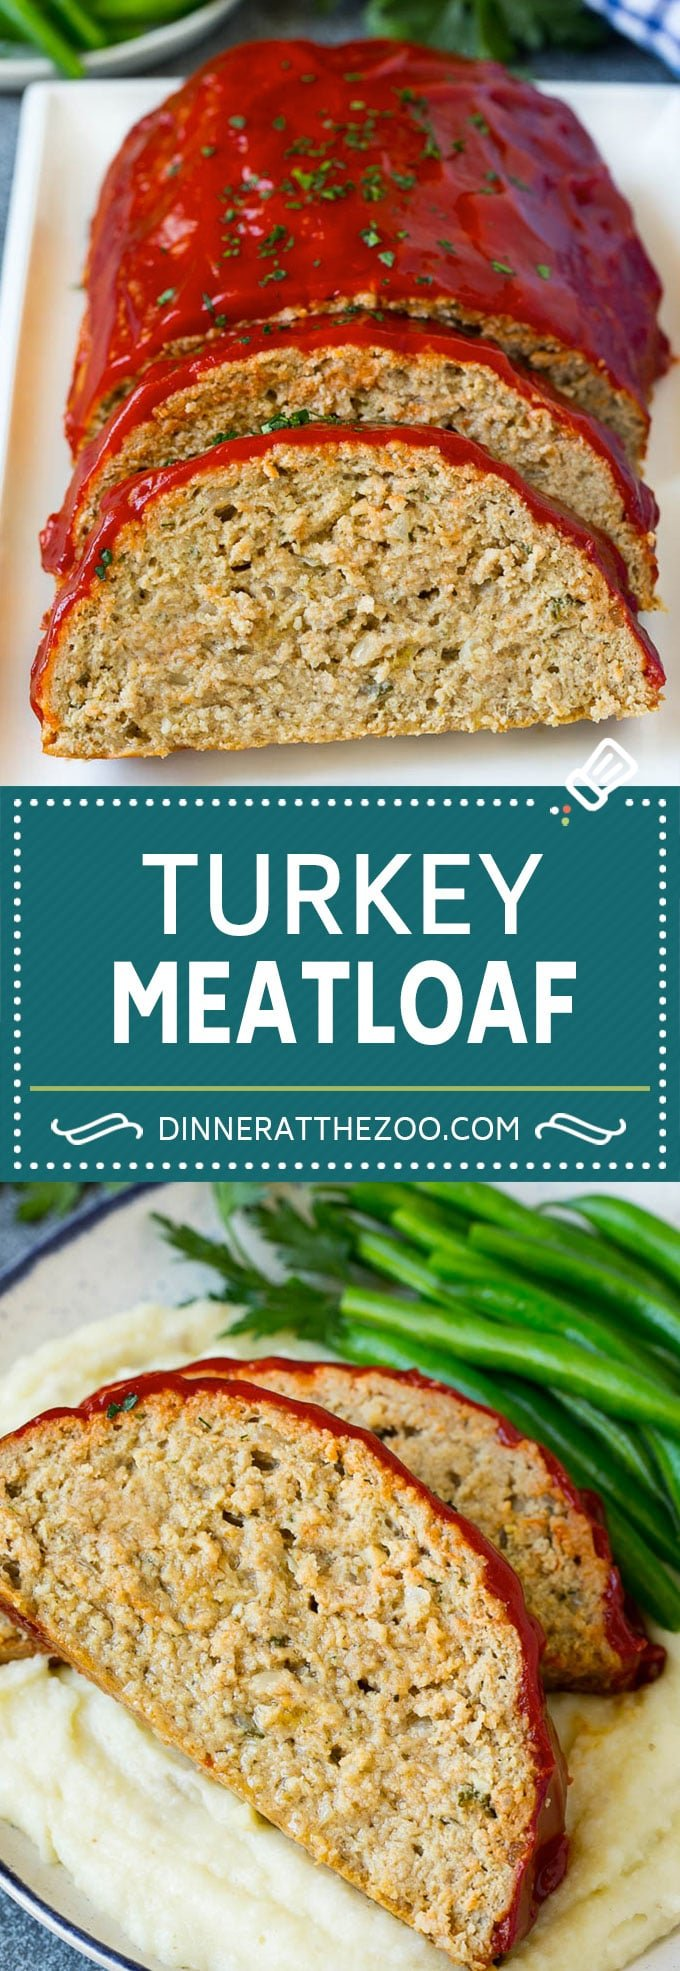 Turkey Meatloaf Recipe | Healthy Meatloaf #meatloaf #turkey #dinner #dinneratthezoo